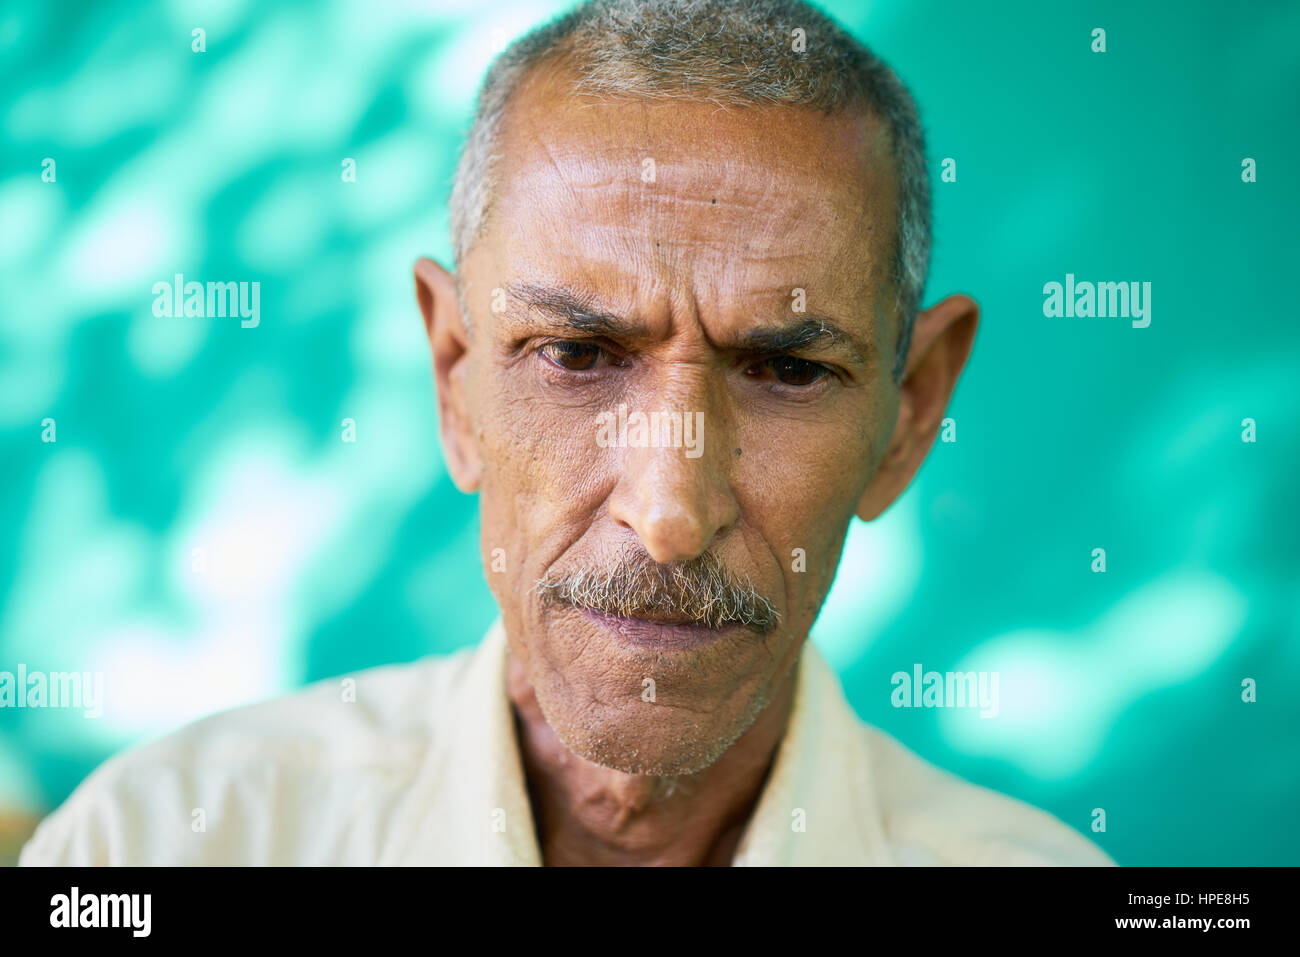 Real Cuban people and emotions, portrait of sad old latino man from Havana, Cuba looking down with worried face - Stock Image